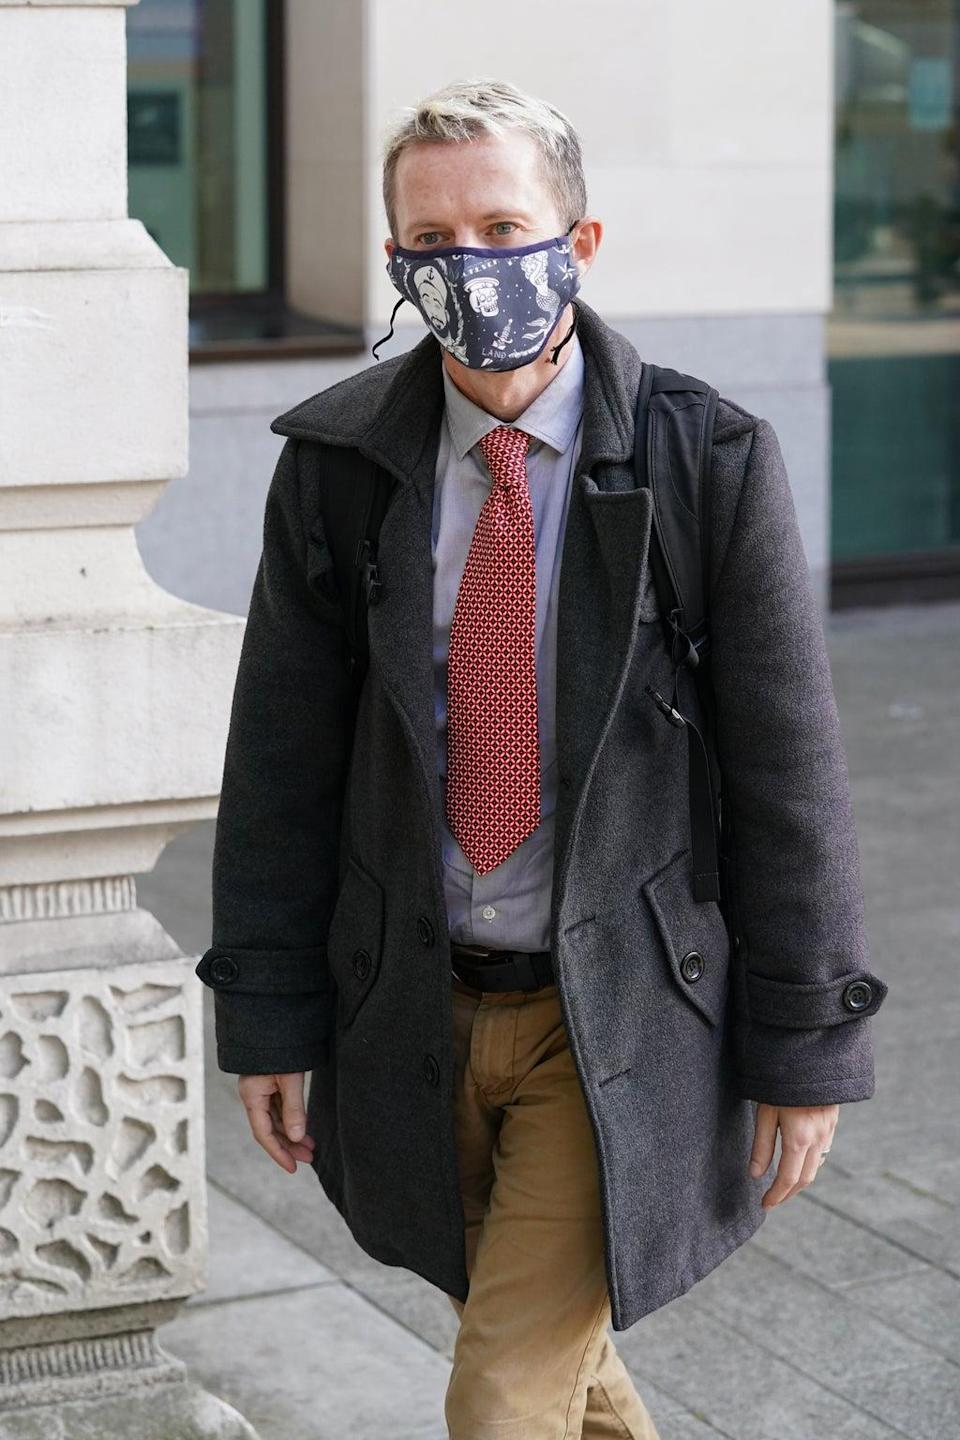 David Knott was found guilty of harassment last month (PA) (PA Wire)